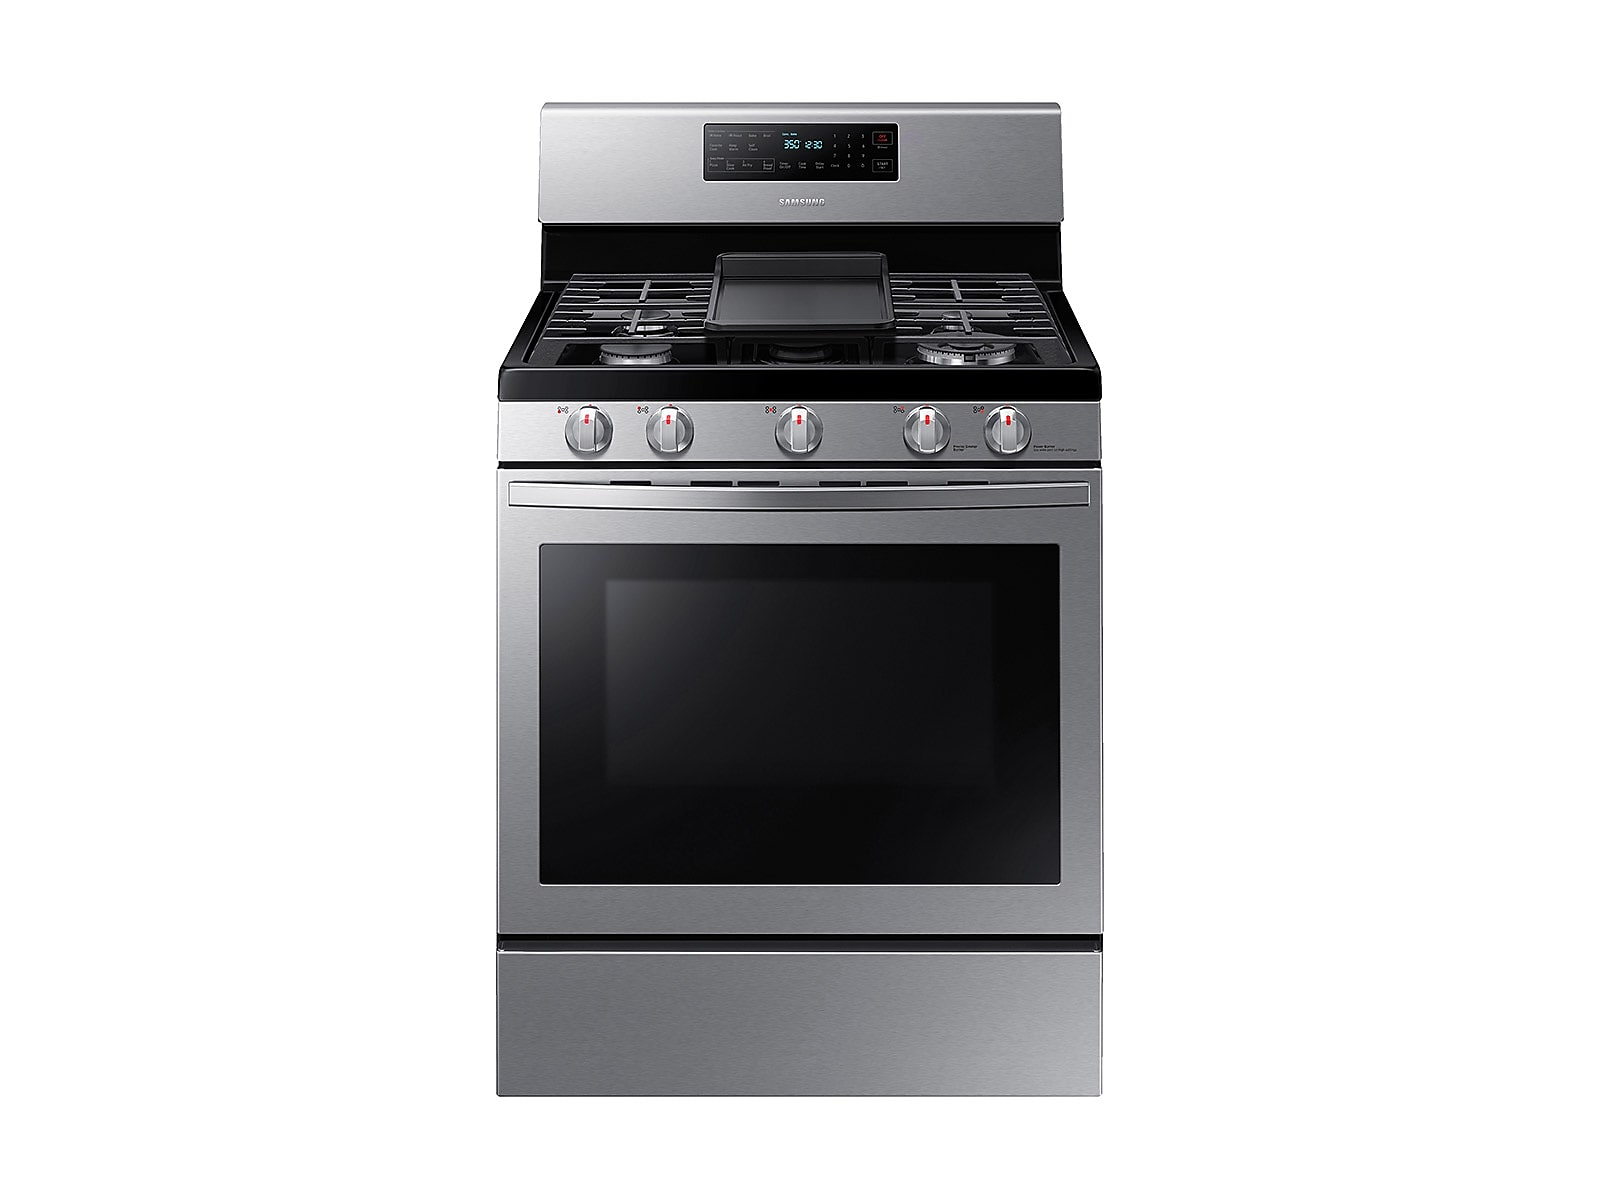 Samsung 5.8 cu. ft. Freestanding Gas Range with Air Fry and Convection in Stainless Steel(NX58T7511SS/AA)